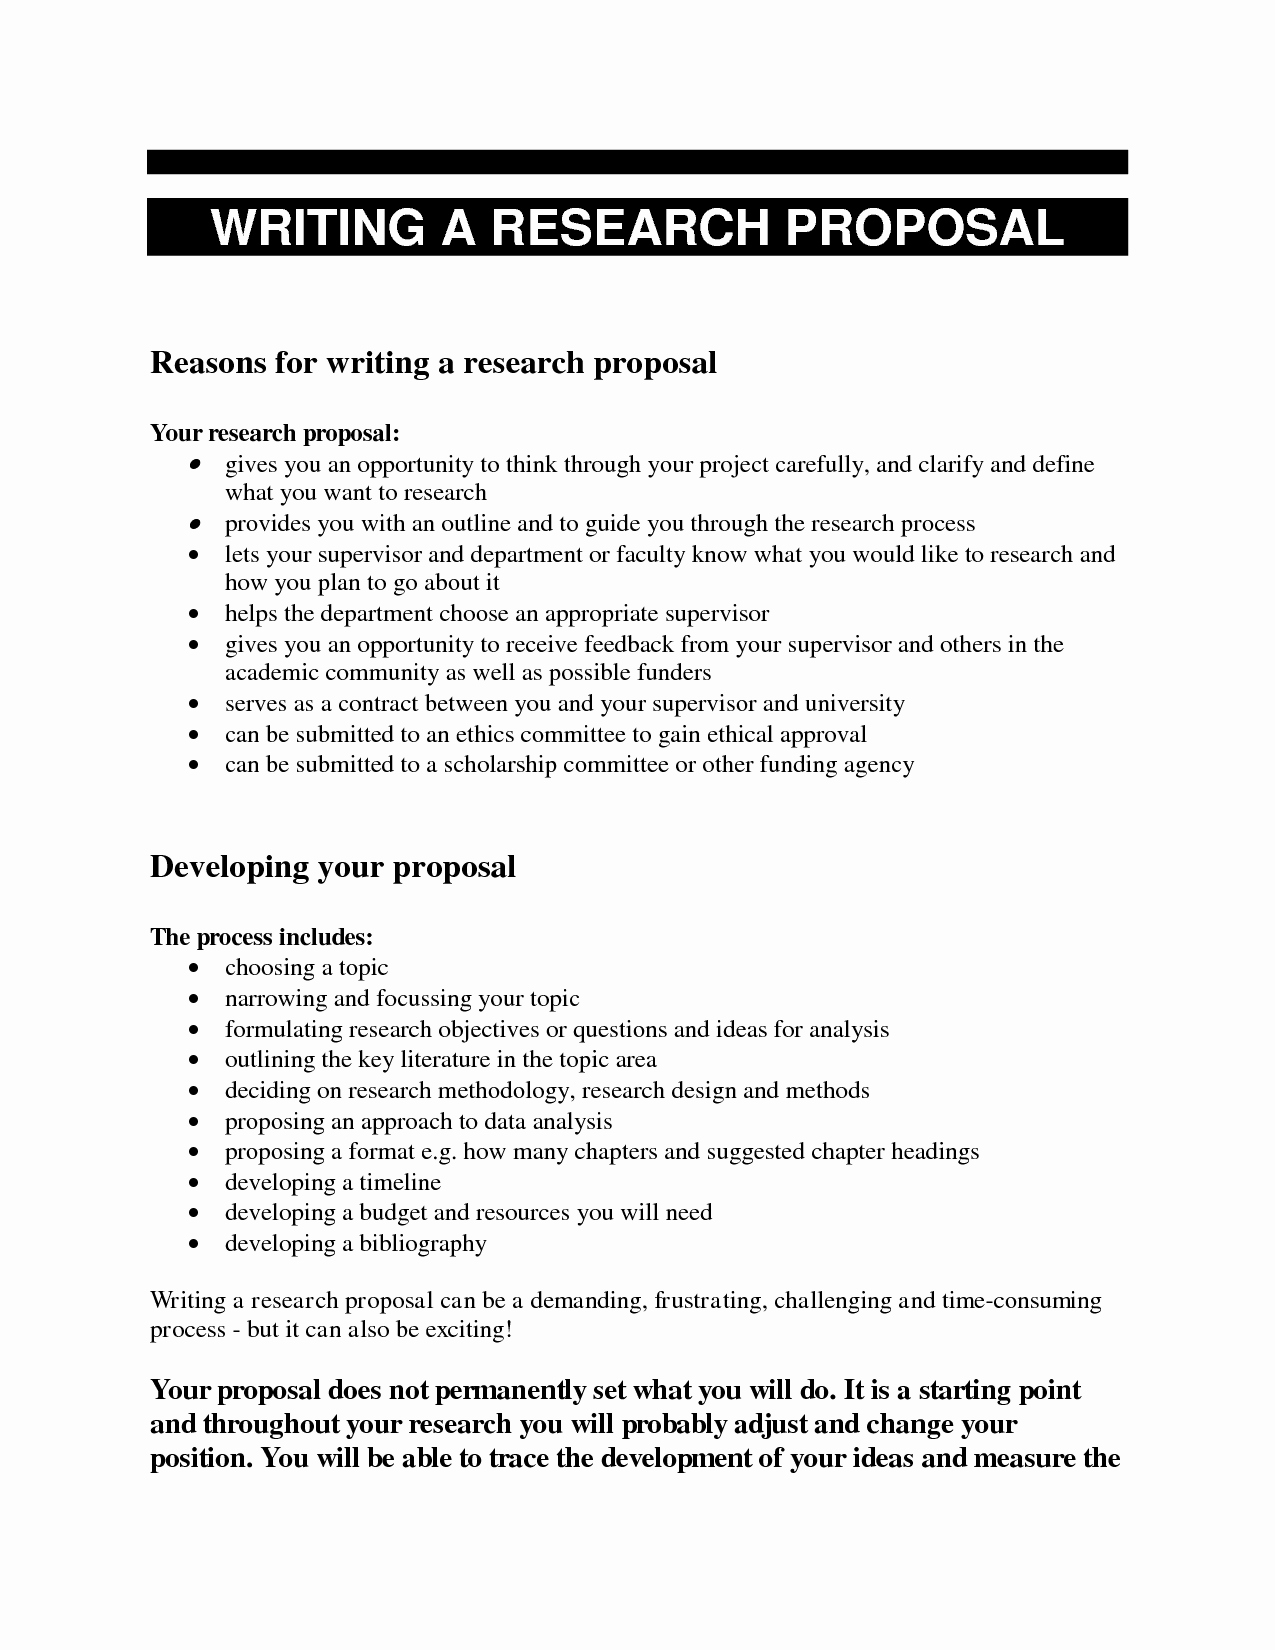 016 How To Write Research Paper Proposal Sample Essay Template For Topics College Students Amazing A In Apa Format Full